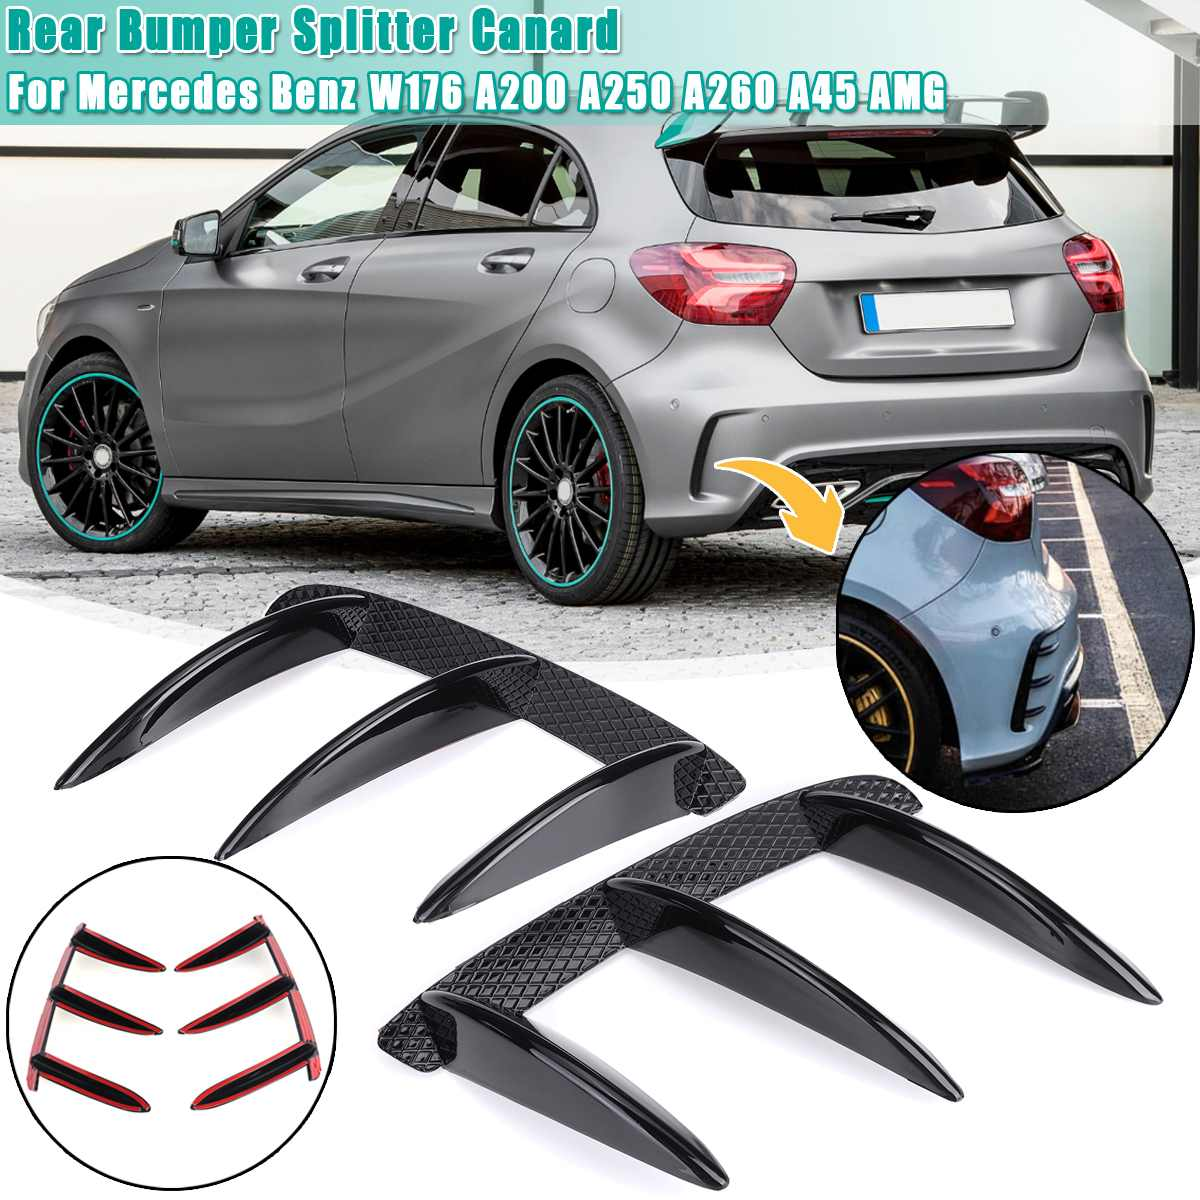 2PCS <font><b>W176</b></font> Splitter Rear Bumper Canards Spoiler For <font><b>Mercedes</b></font> for <font><b>Benz</b></font> <font><b>W176</b></font> <font><b>A200</b></font> A250 A260 A45 for AMG Package ABS Black image